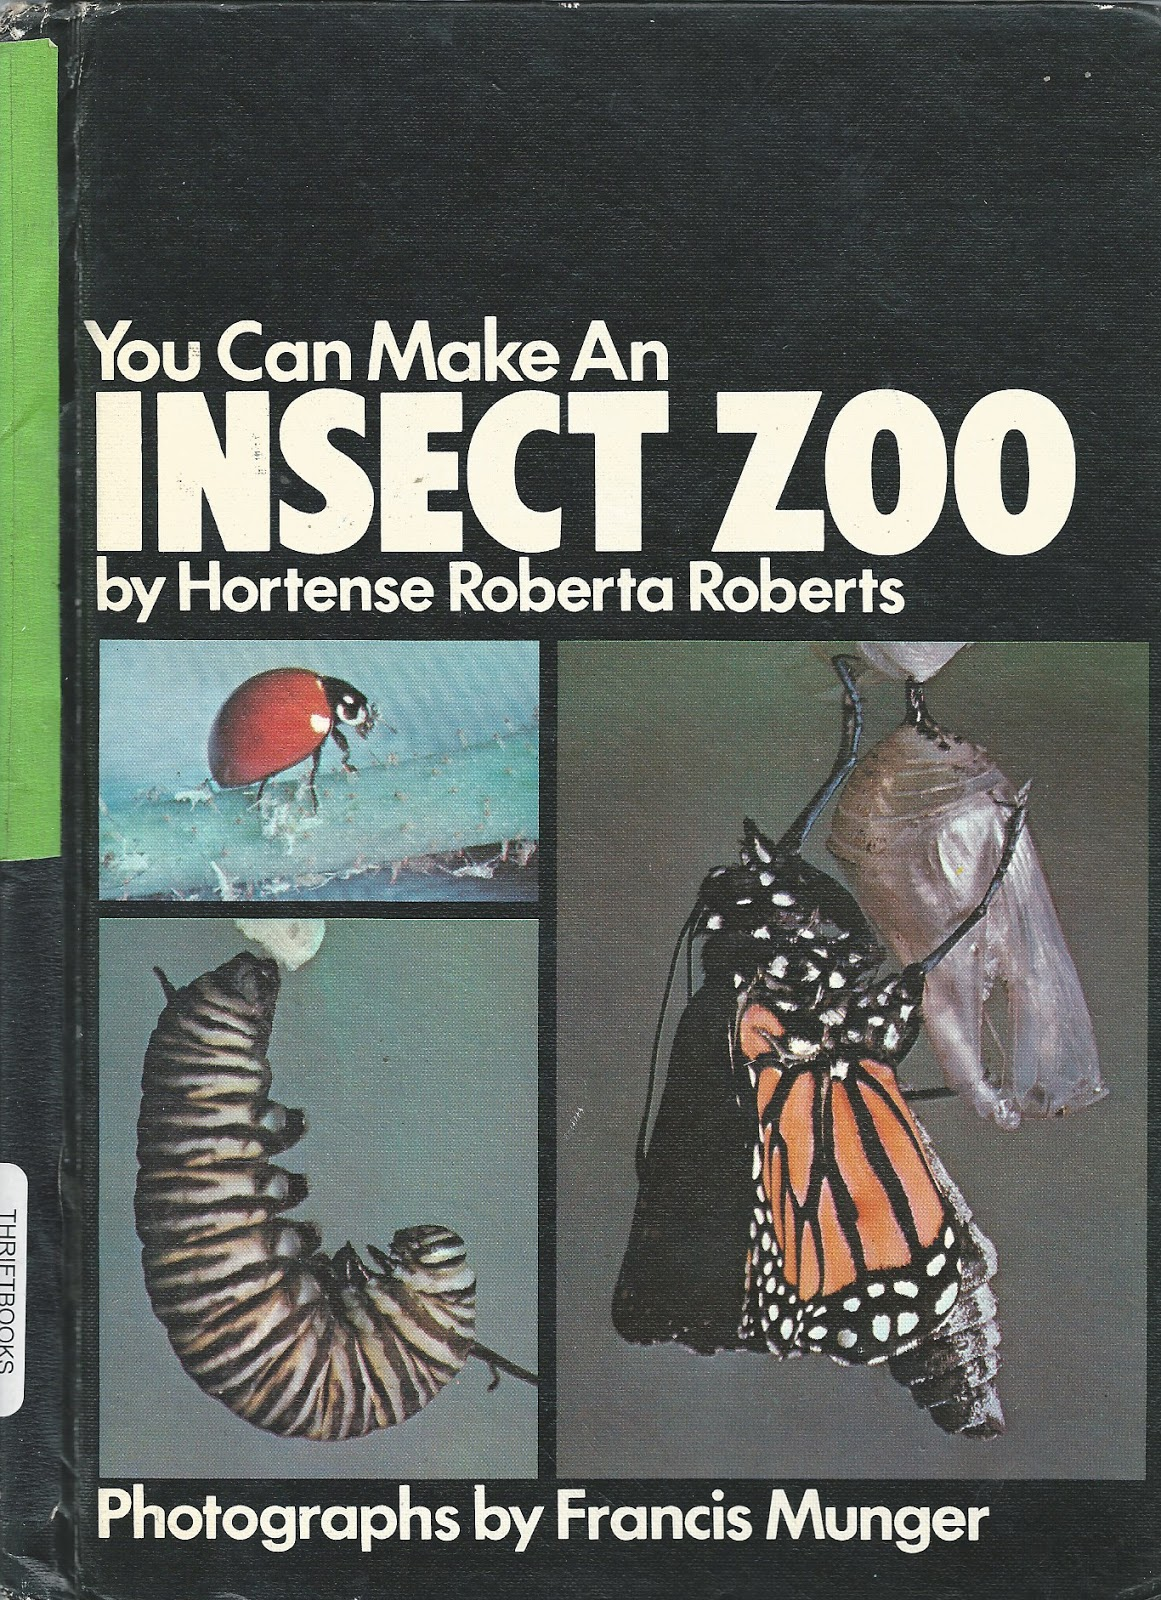 How to Make an Insect Zoo